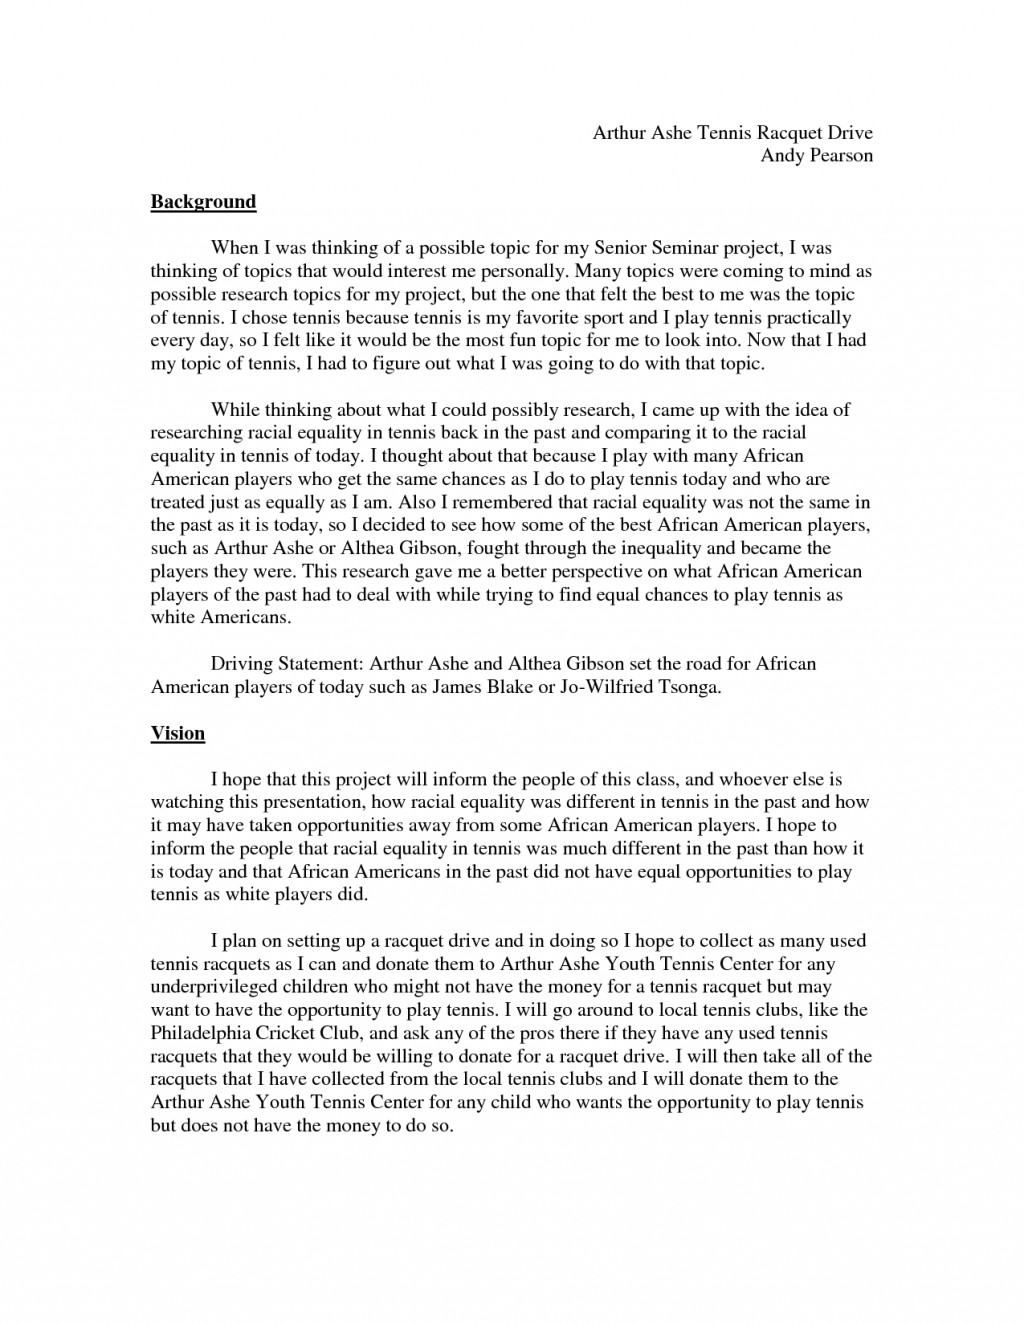 Anorexia research paper